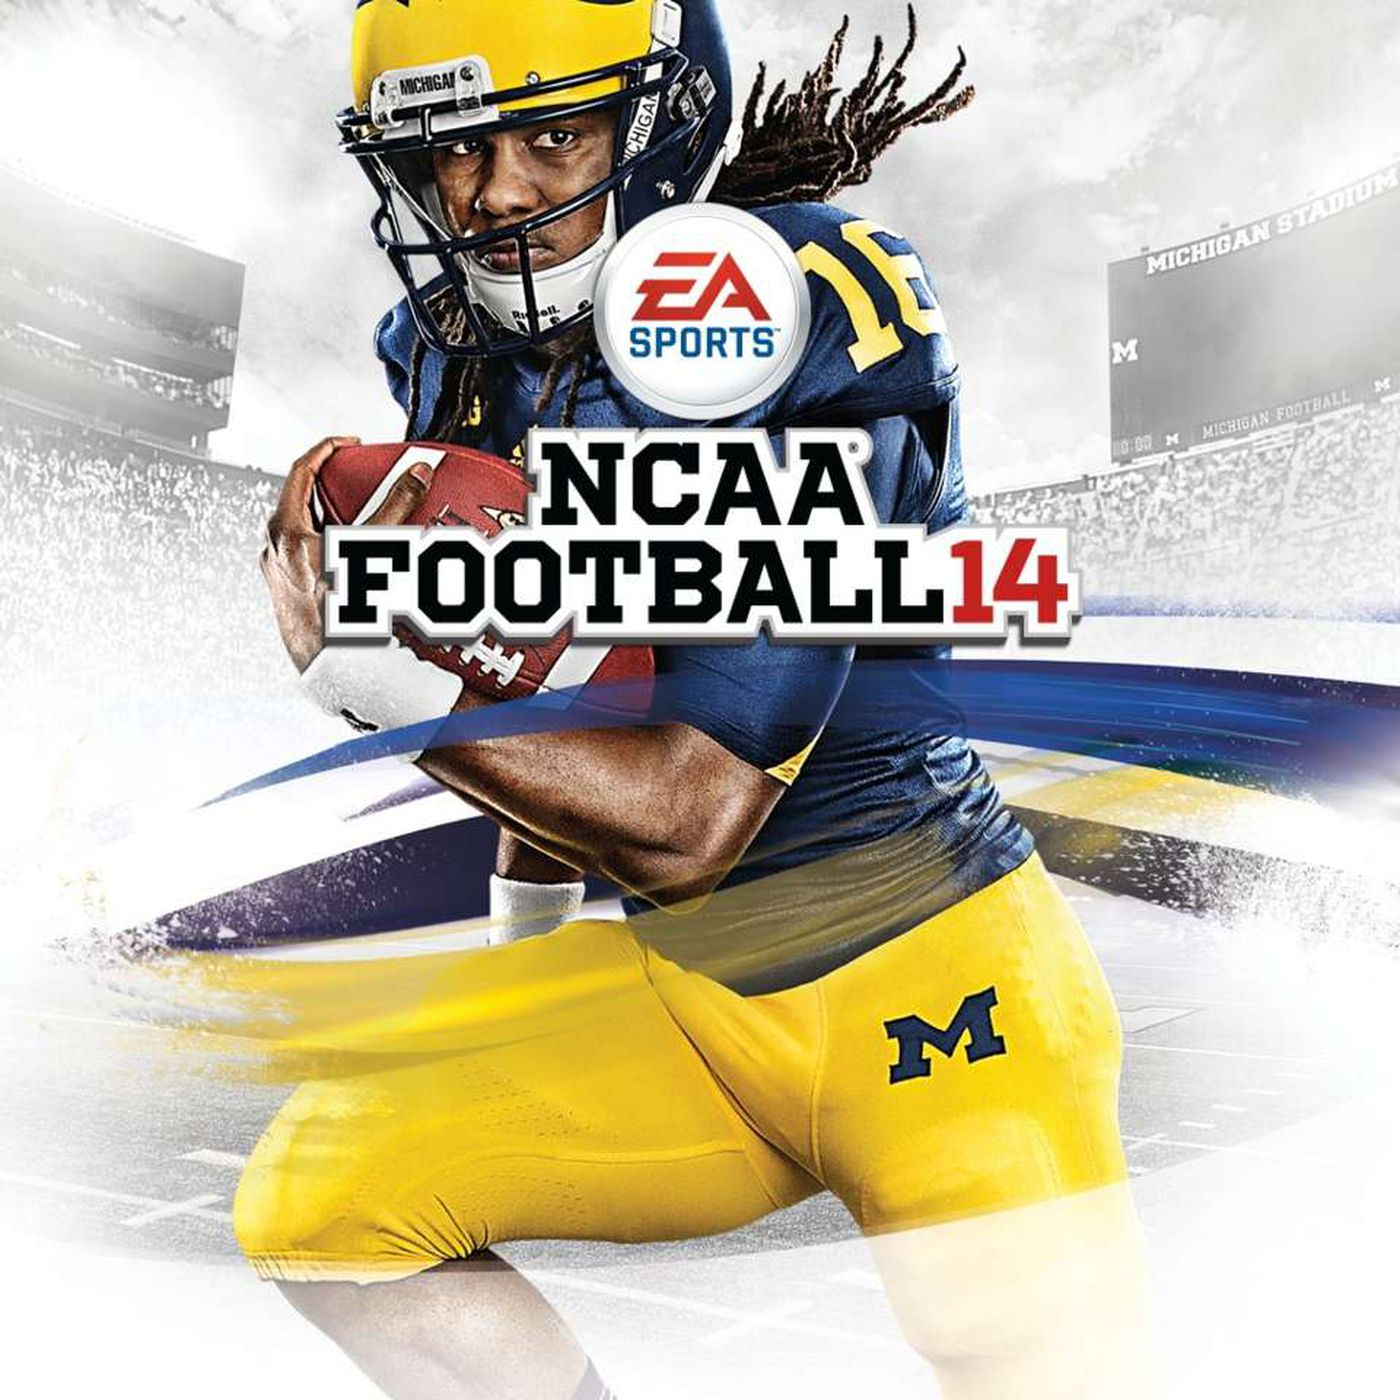 NCAA Football 14 throwback review: Denard Robinson the symbol of a better  time for sports gamers - Maize n Brew